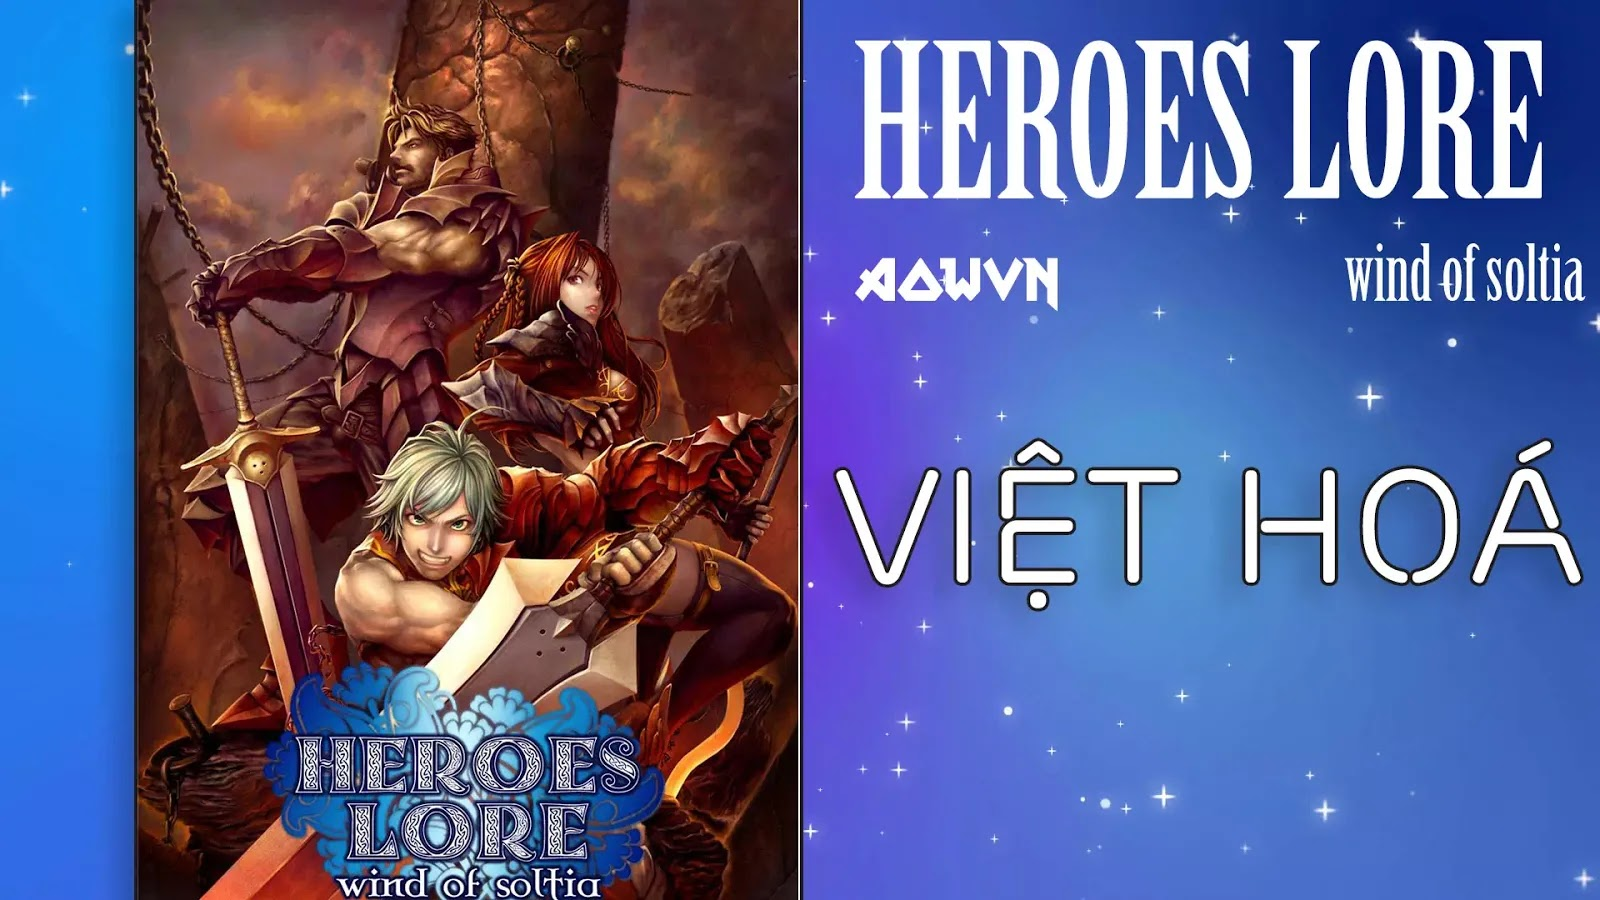 heroes lore wing aowvn - [ Java ] Heroes Lore Wind of Soltia & Zero | Việt Hoá - Giả Lập PC Android